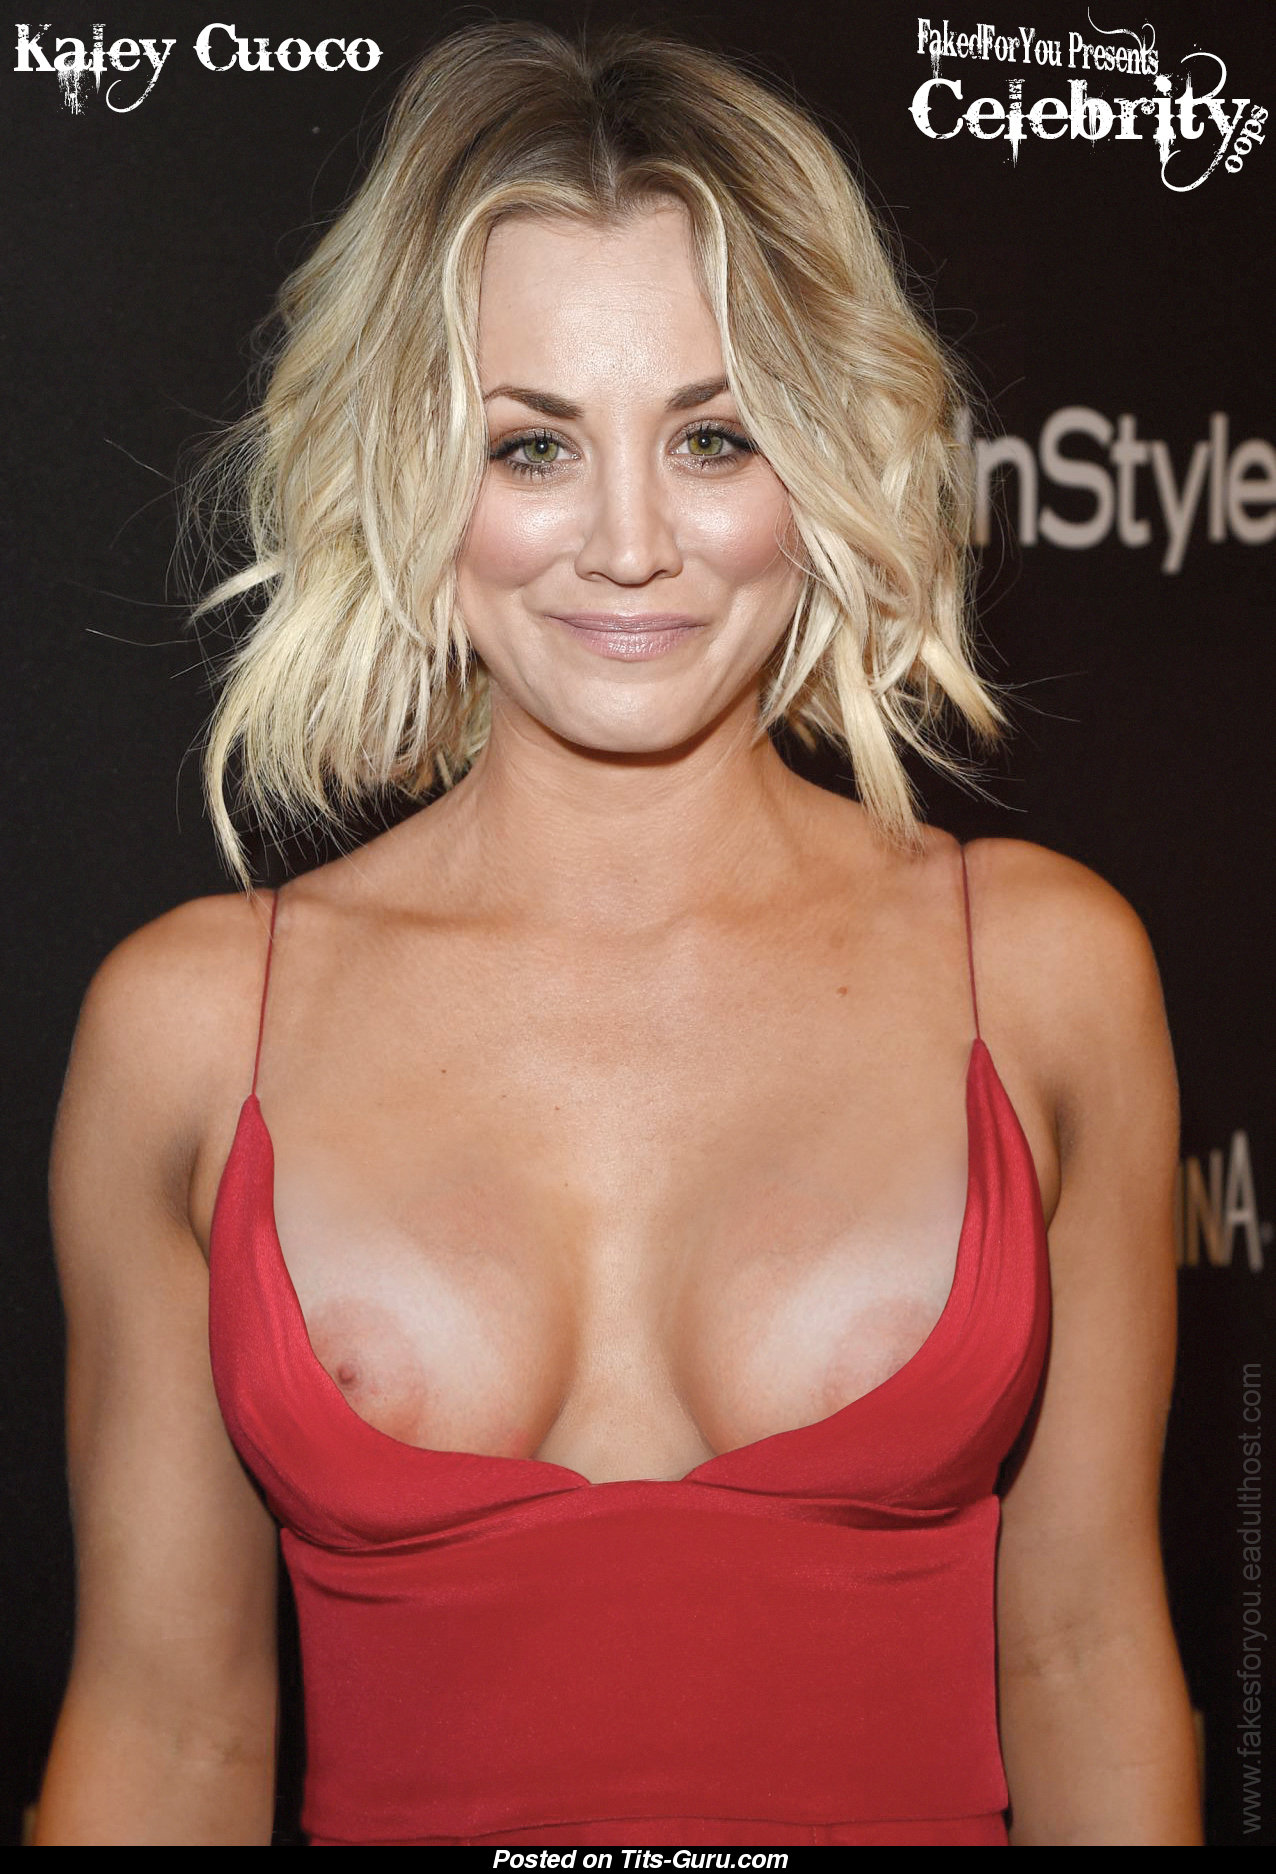 Kaley cuoco hot tits